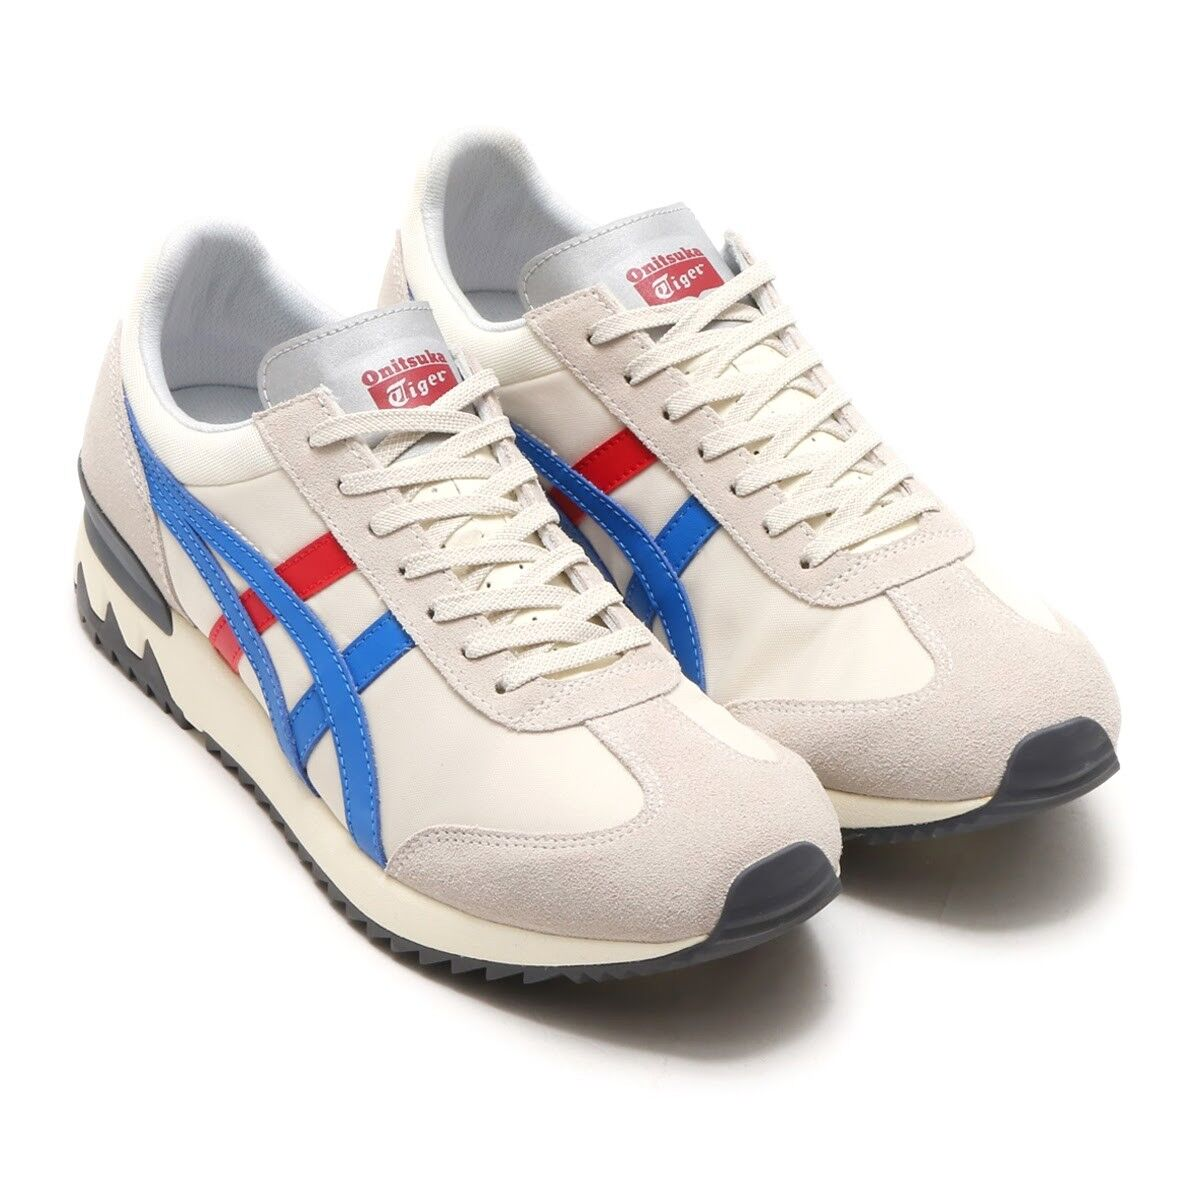 Onitsuka Tiger California 78 EX schuhe (D800N-0042) Casual Turnschuhe Trainers